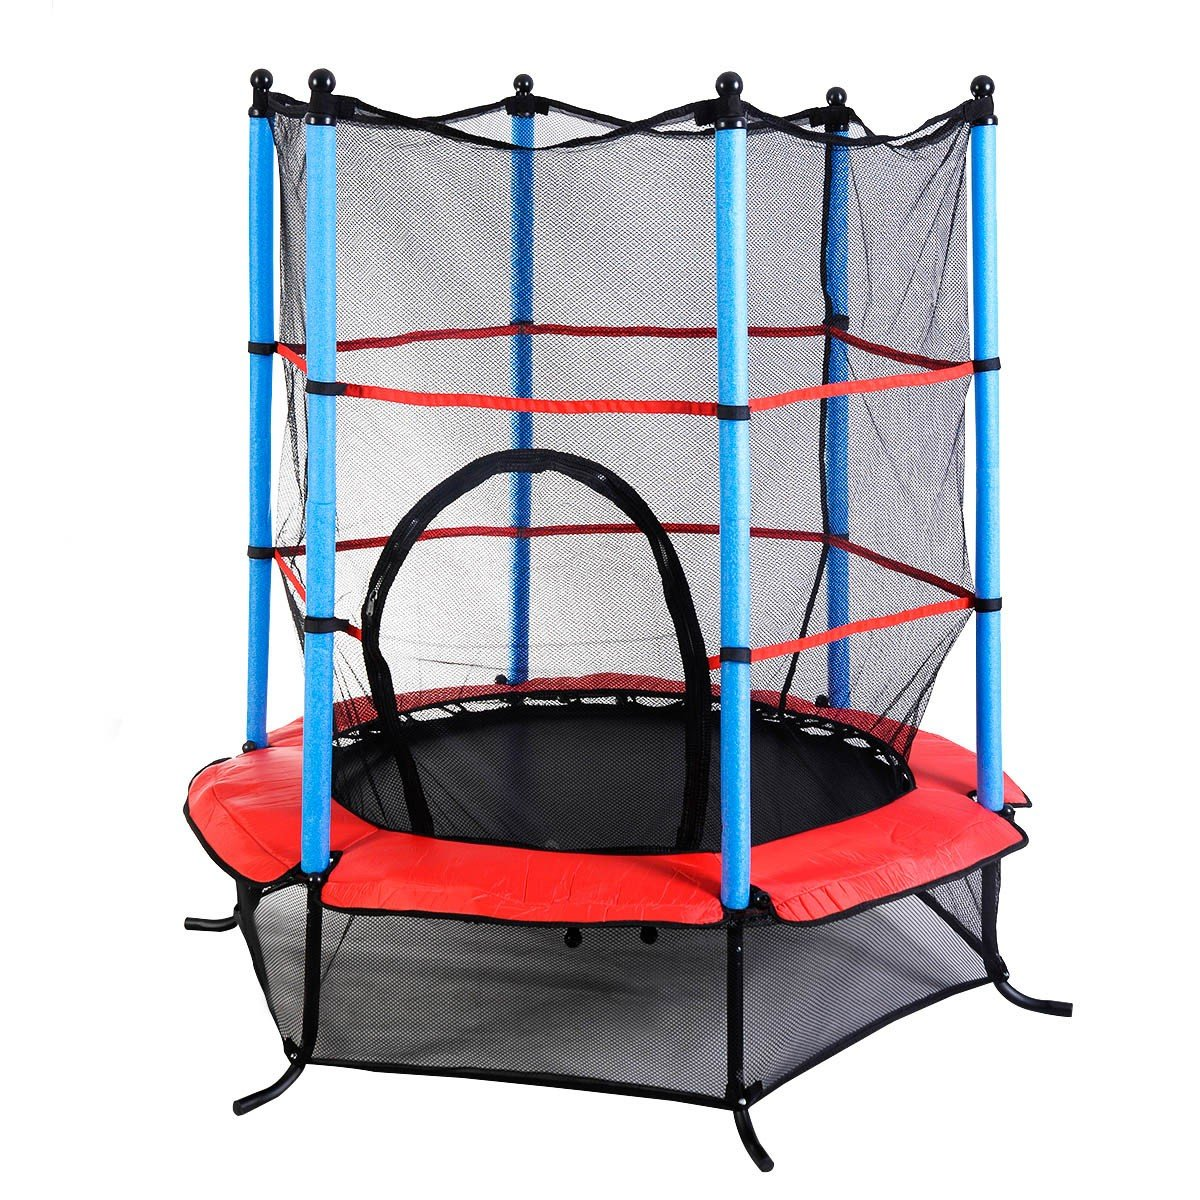 55'' Kids Jumping Trampoline with Safety Pad Enclosure Combo by Apontus